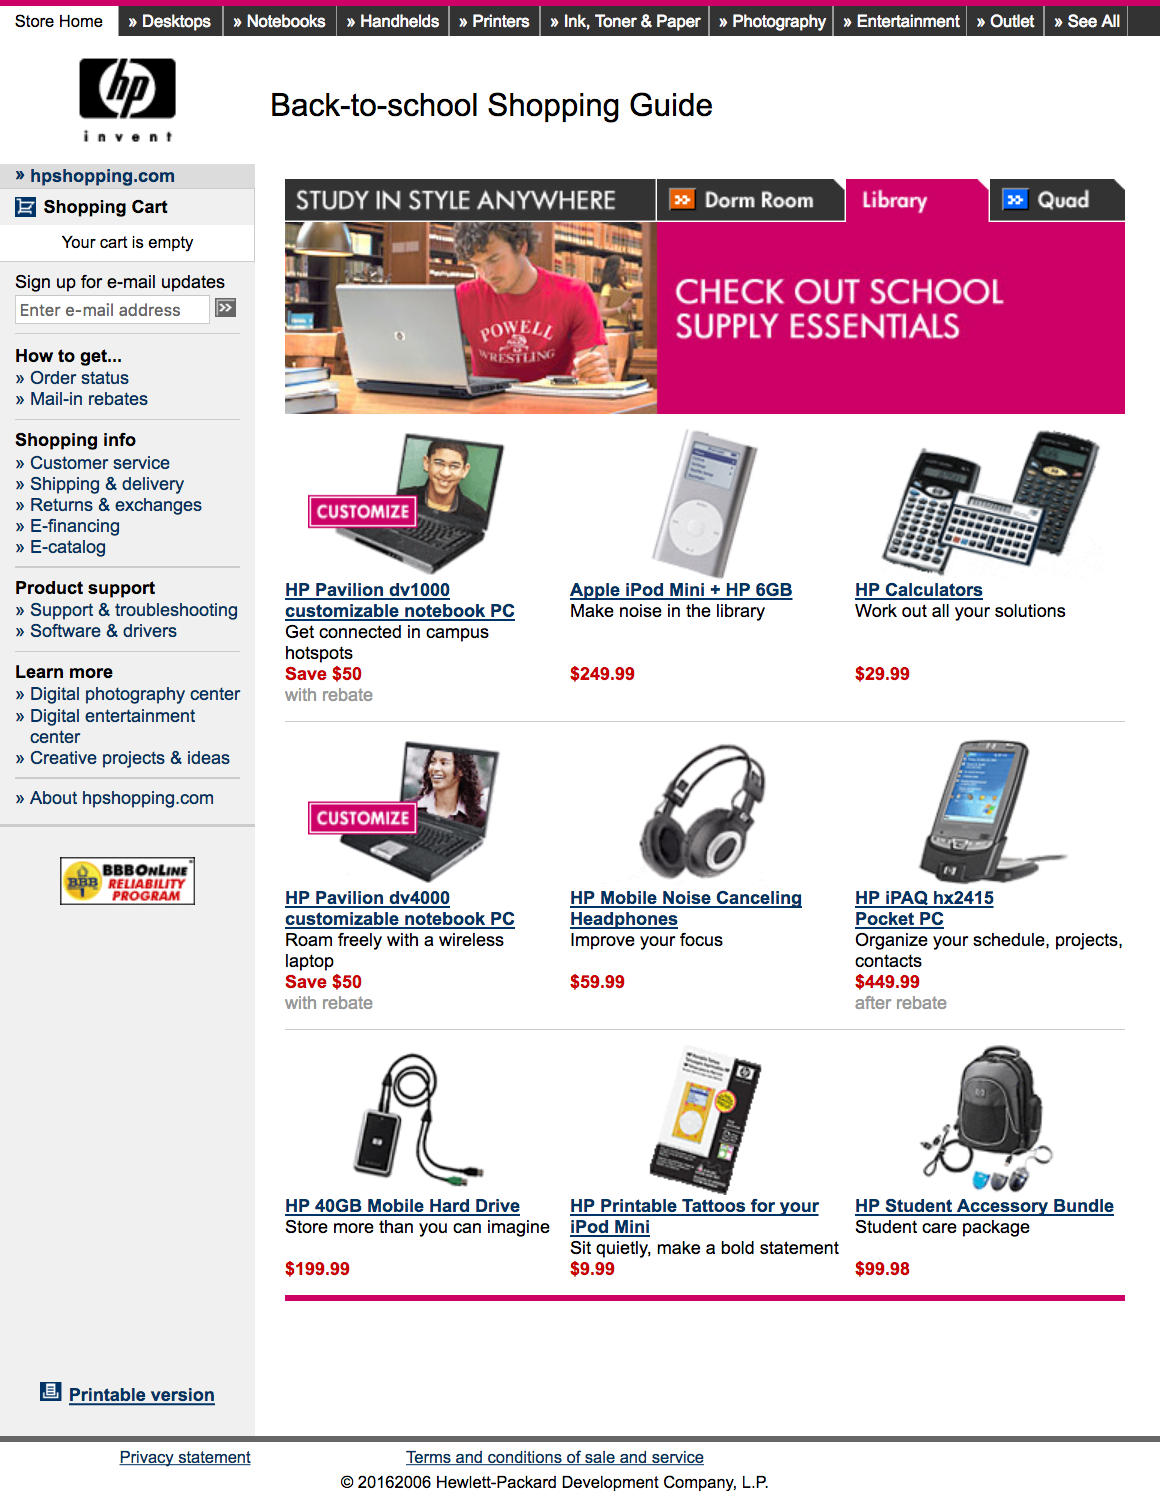 HPShopping.com Back-to-School Shopping Guide - Study Anywhere: Library